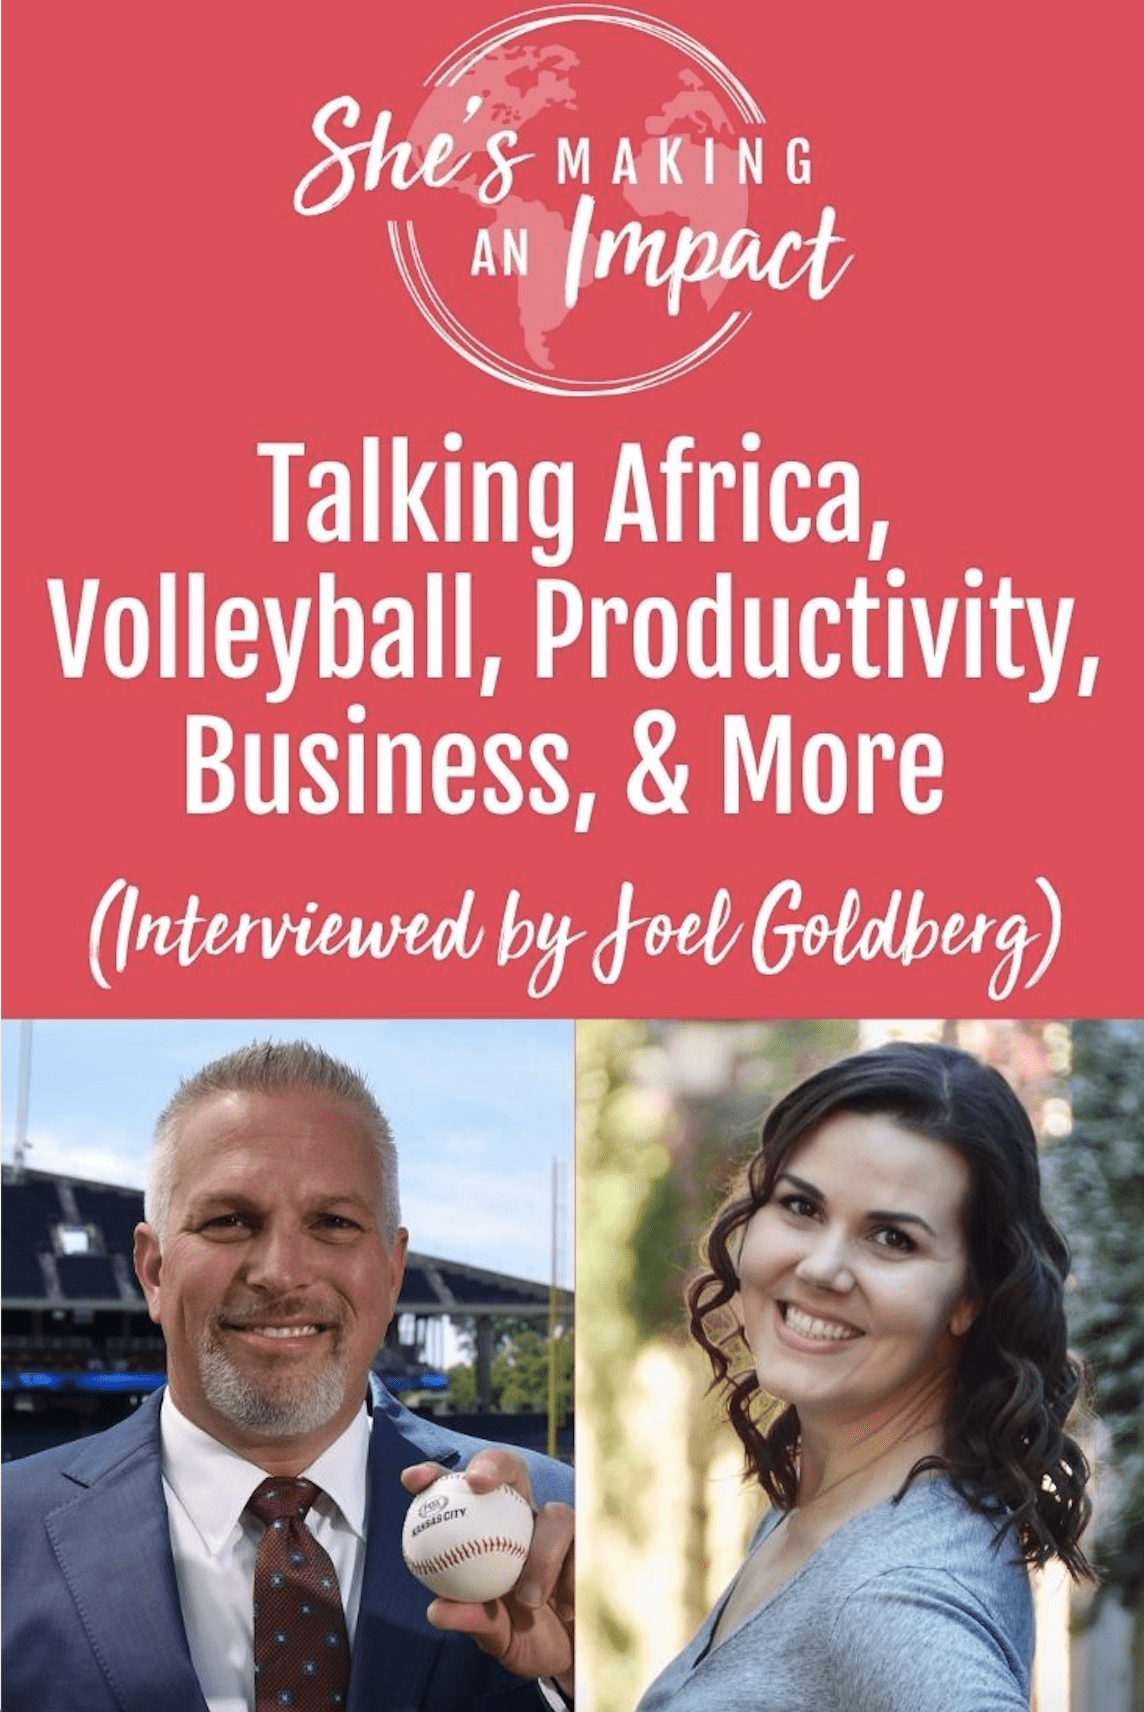 Talking Africa, Volleyball, Productivity, Business, and More (Interviewed by Joel Goldberg): Episode 249